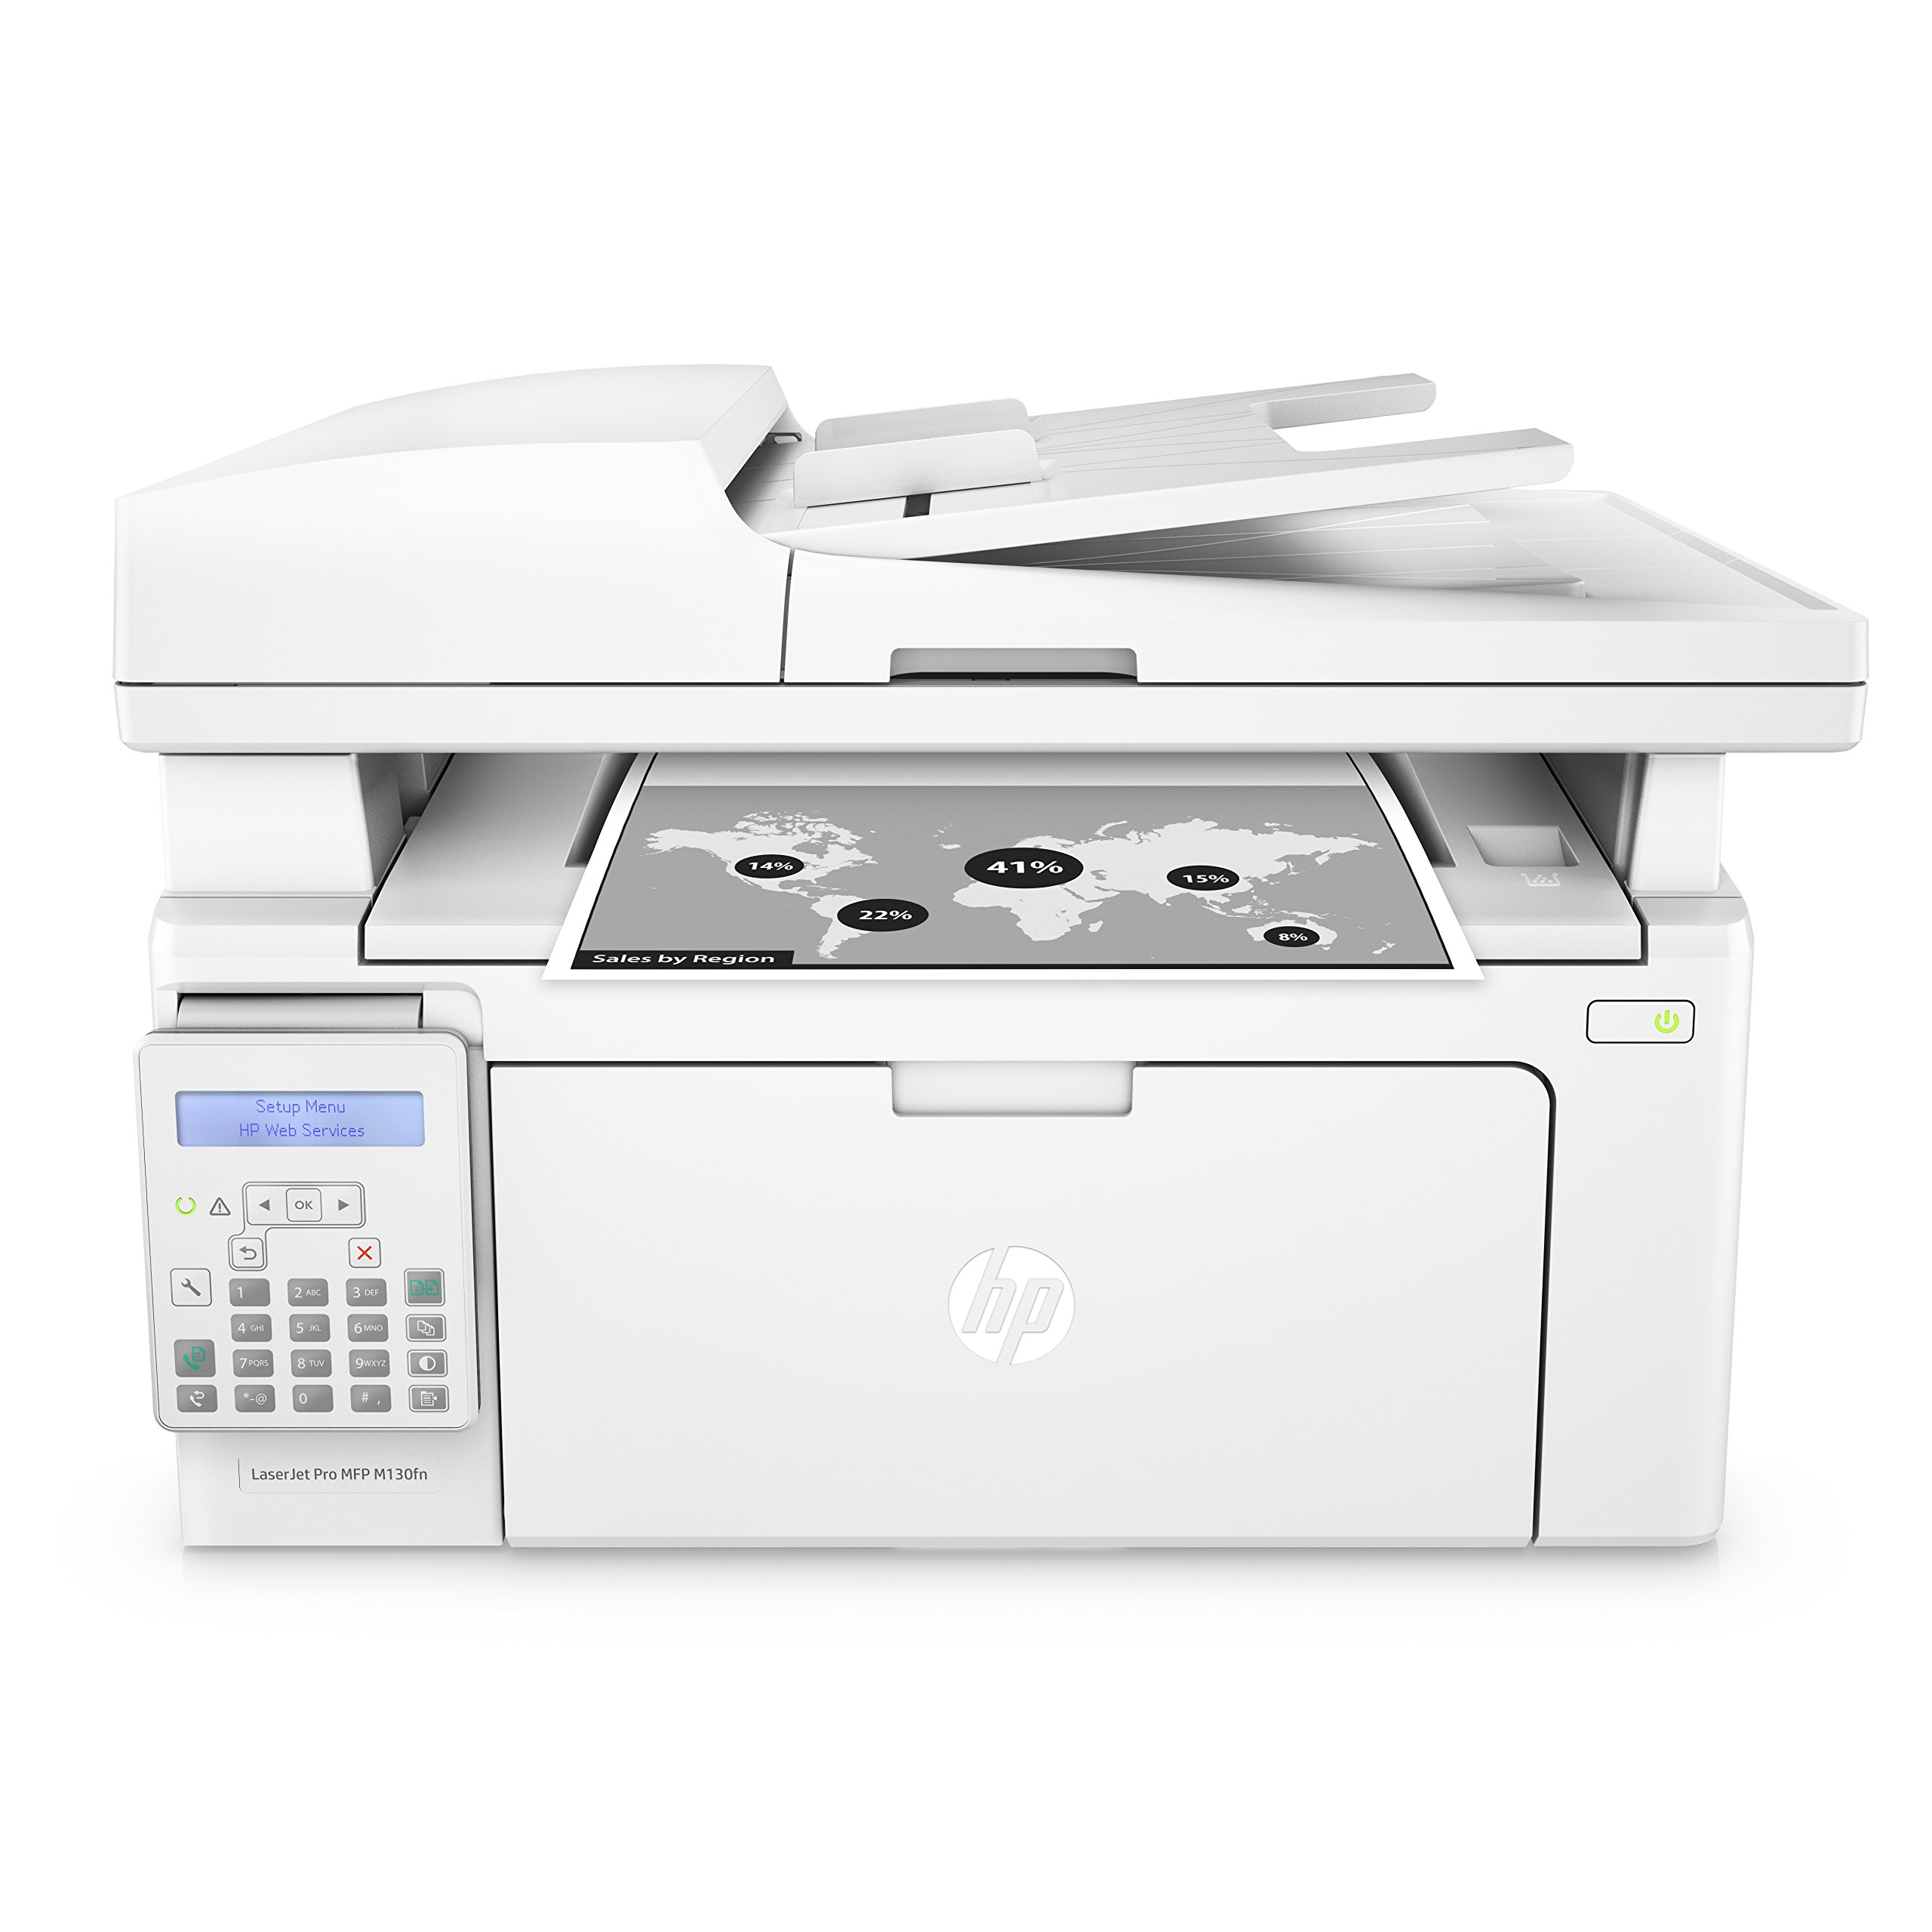 HP LaserJet Pro M130fn All-in-One Laser Printer with print security (G3Q59A). Replaces HP M127fn Laser Printer